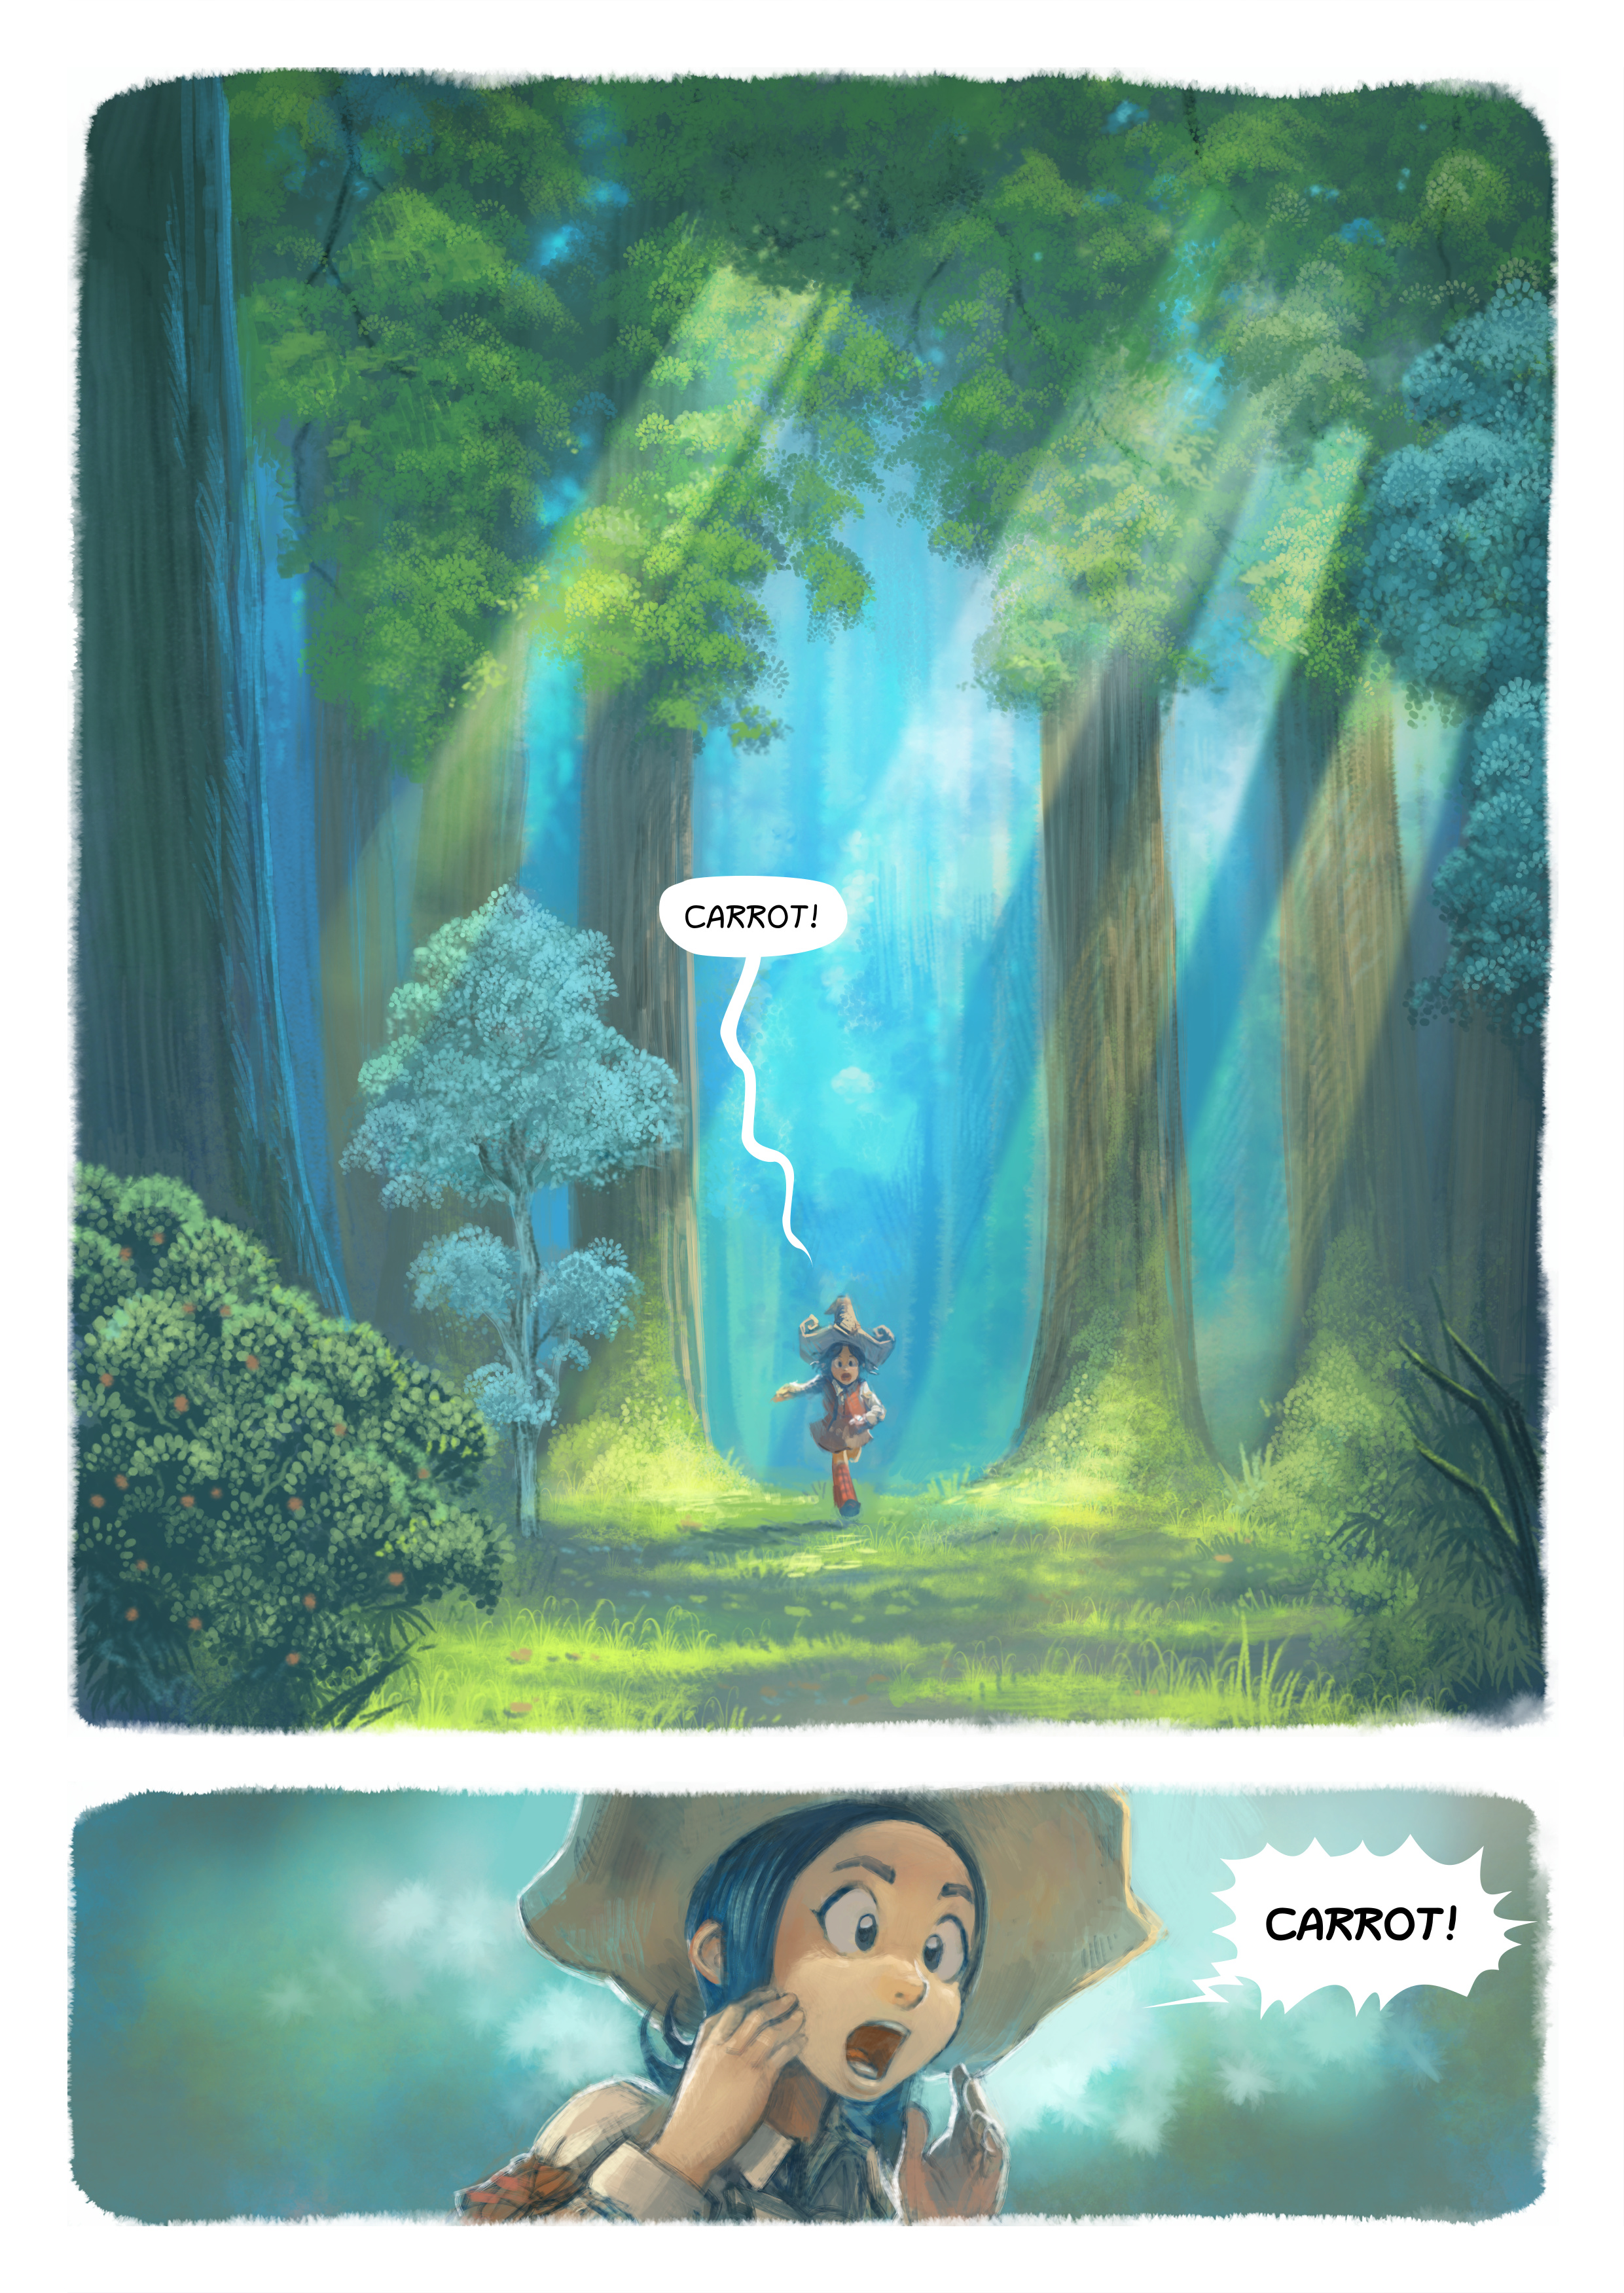 A webcomic page of Pepper&Carrot, aflevering 7 [nl], pagina 1